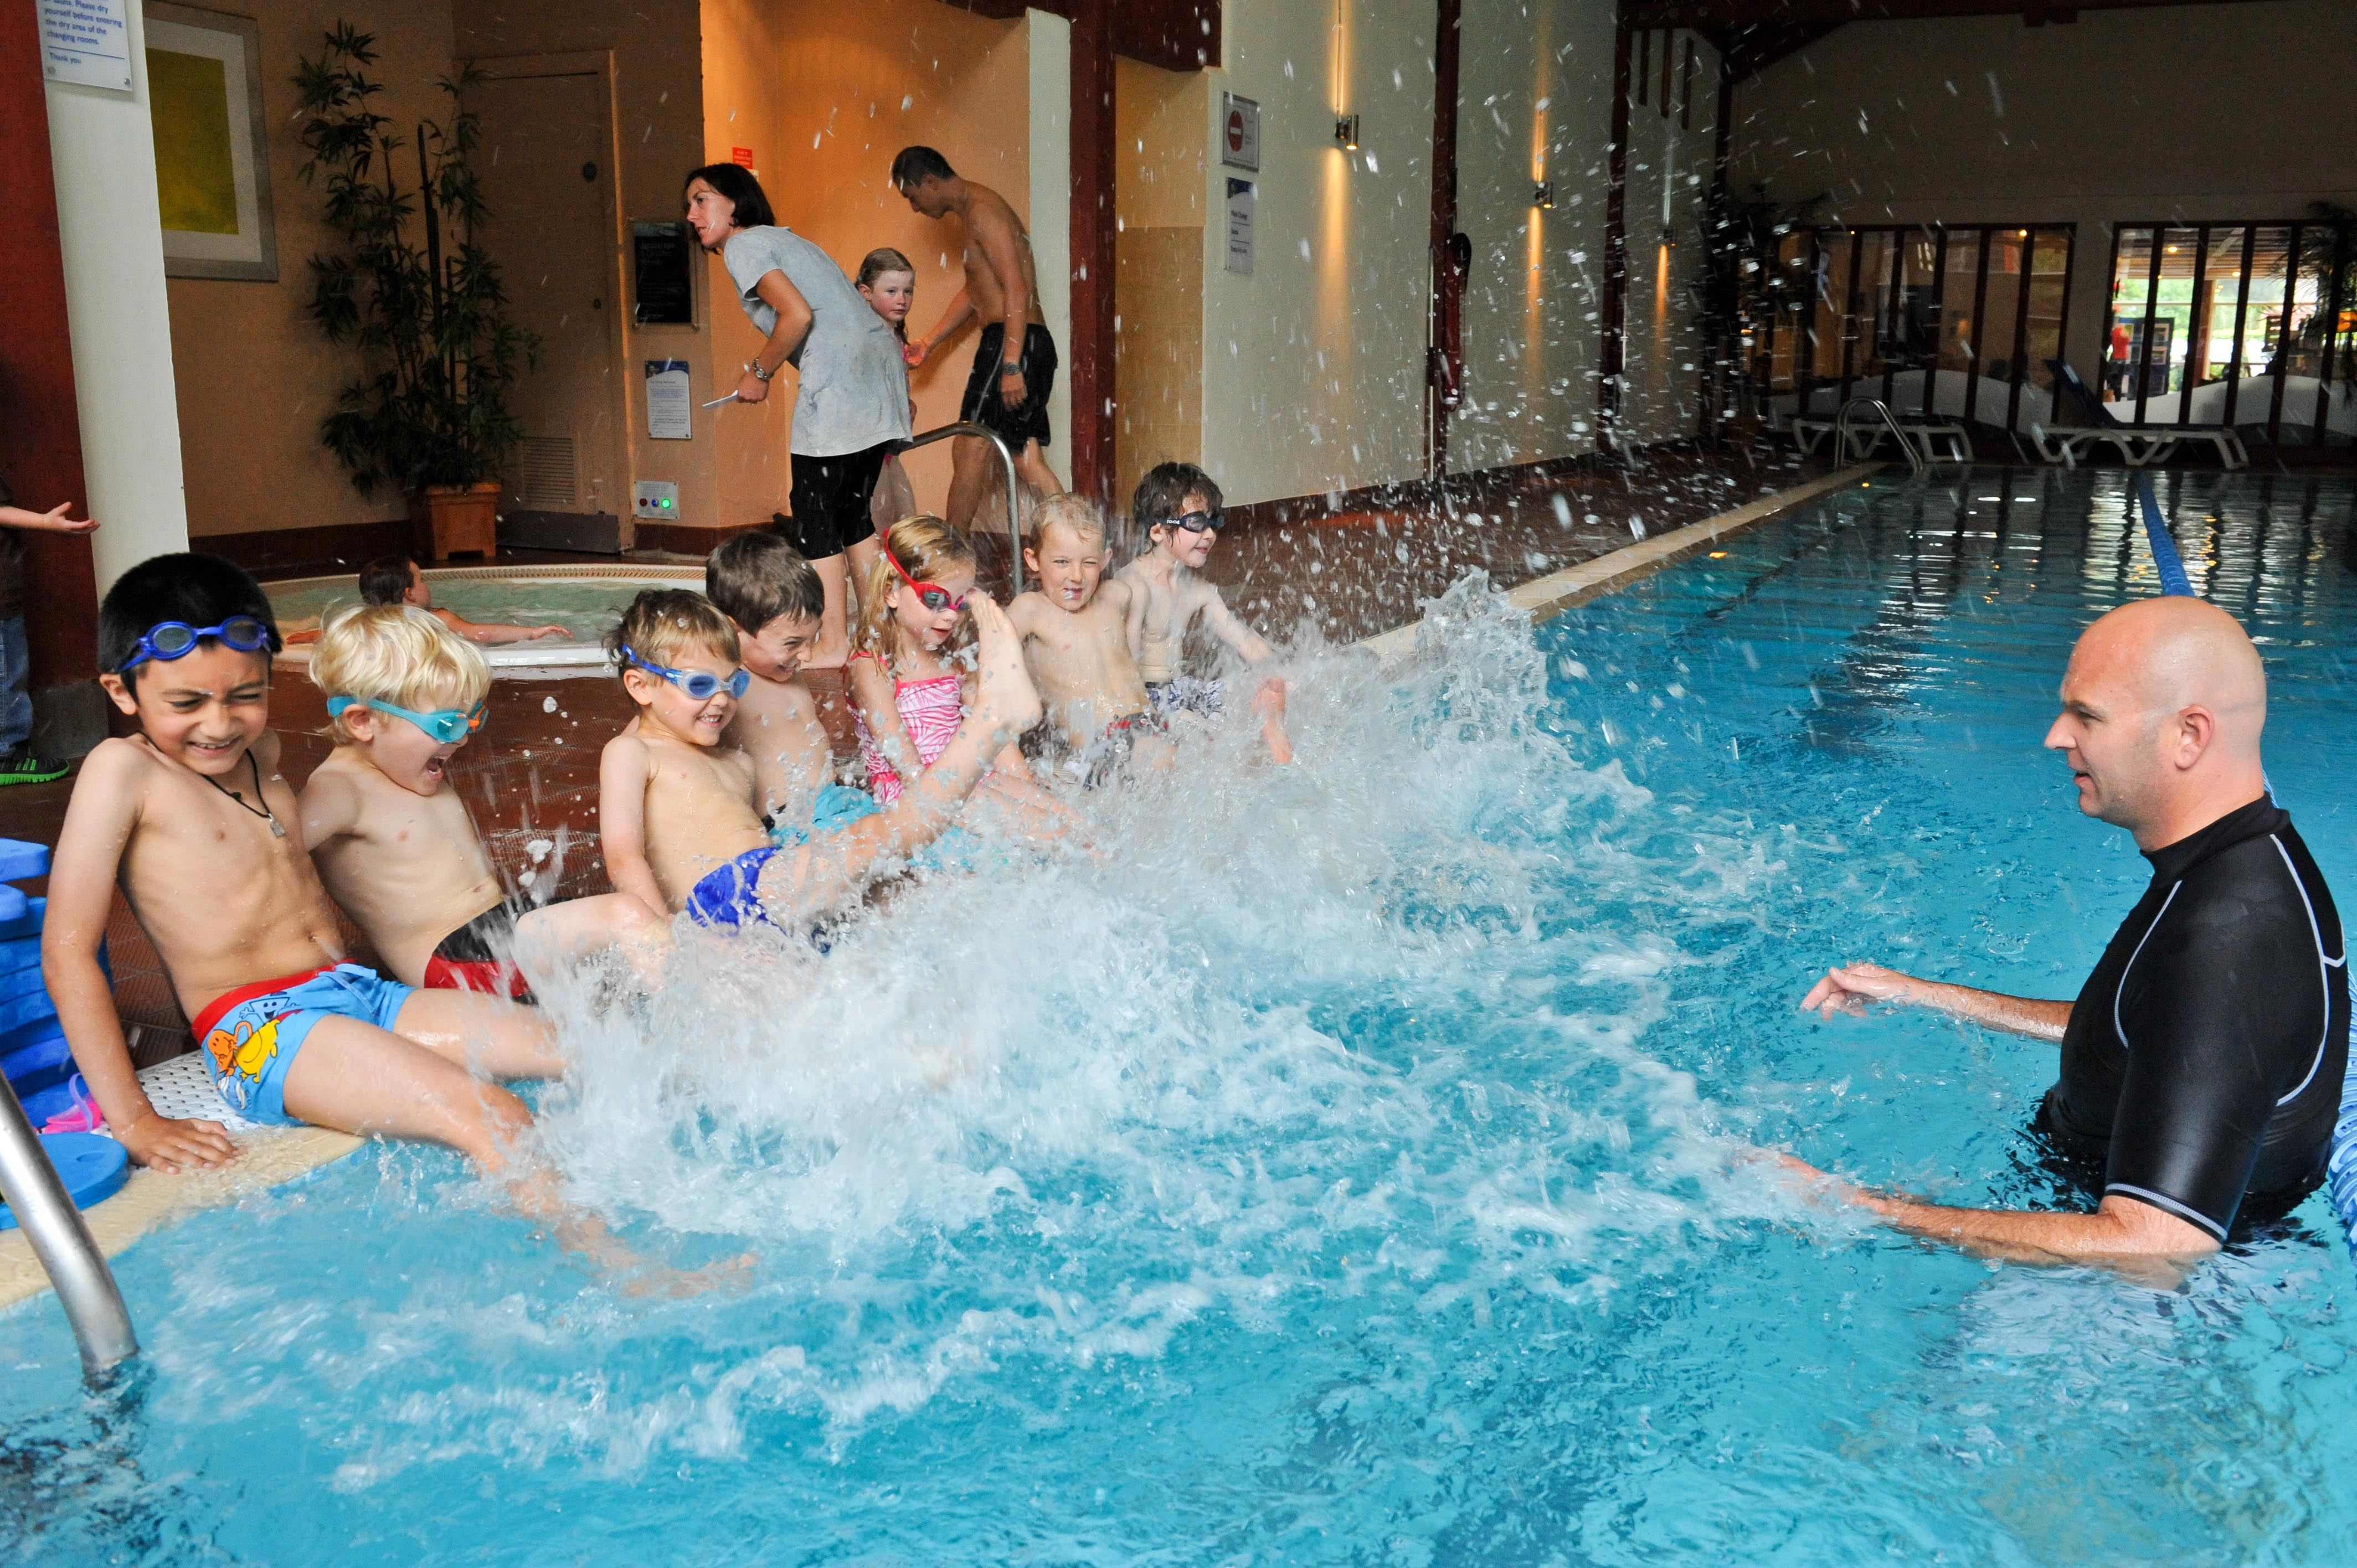 Fitness nutrition news yorkshire reporter - Swimming pools with slides in yorkshire ...